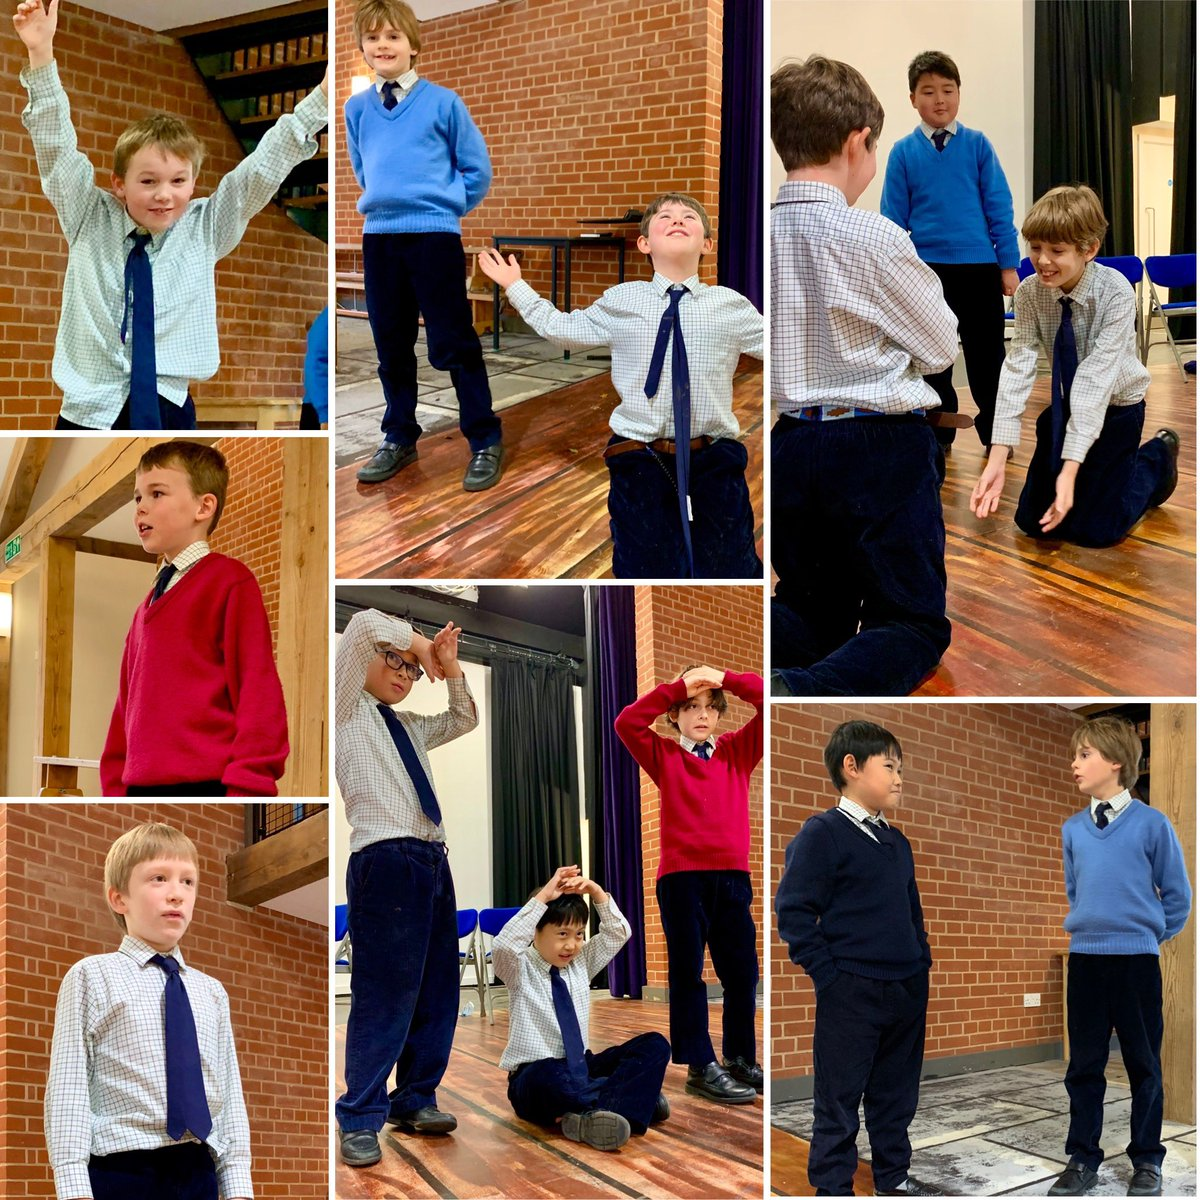 Rehearsals for the VI's Nativity are in full swing @_Ludgrove. Well done boys for learning your lines over the exeat weekend. There are certainly some enthusiastic performances even at this early stage! ⭐️ #nativity #schoolplay #rehearsals #performers #prepschool